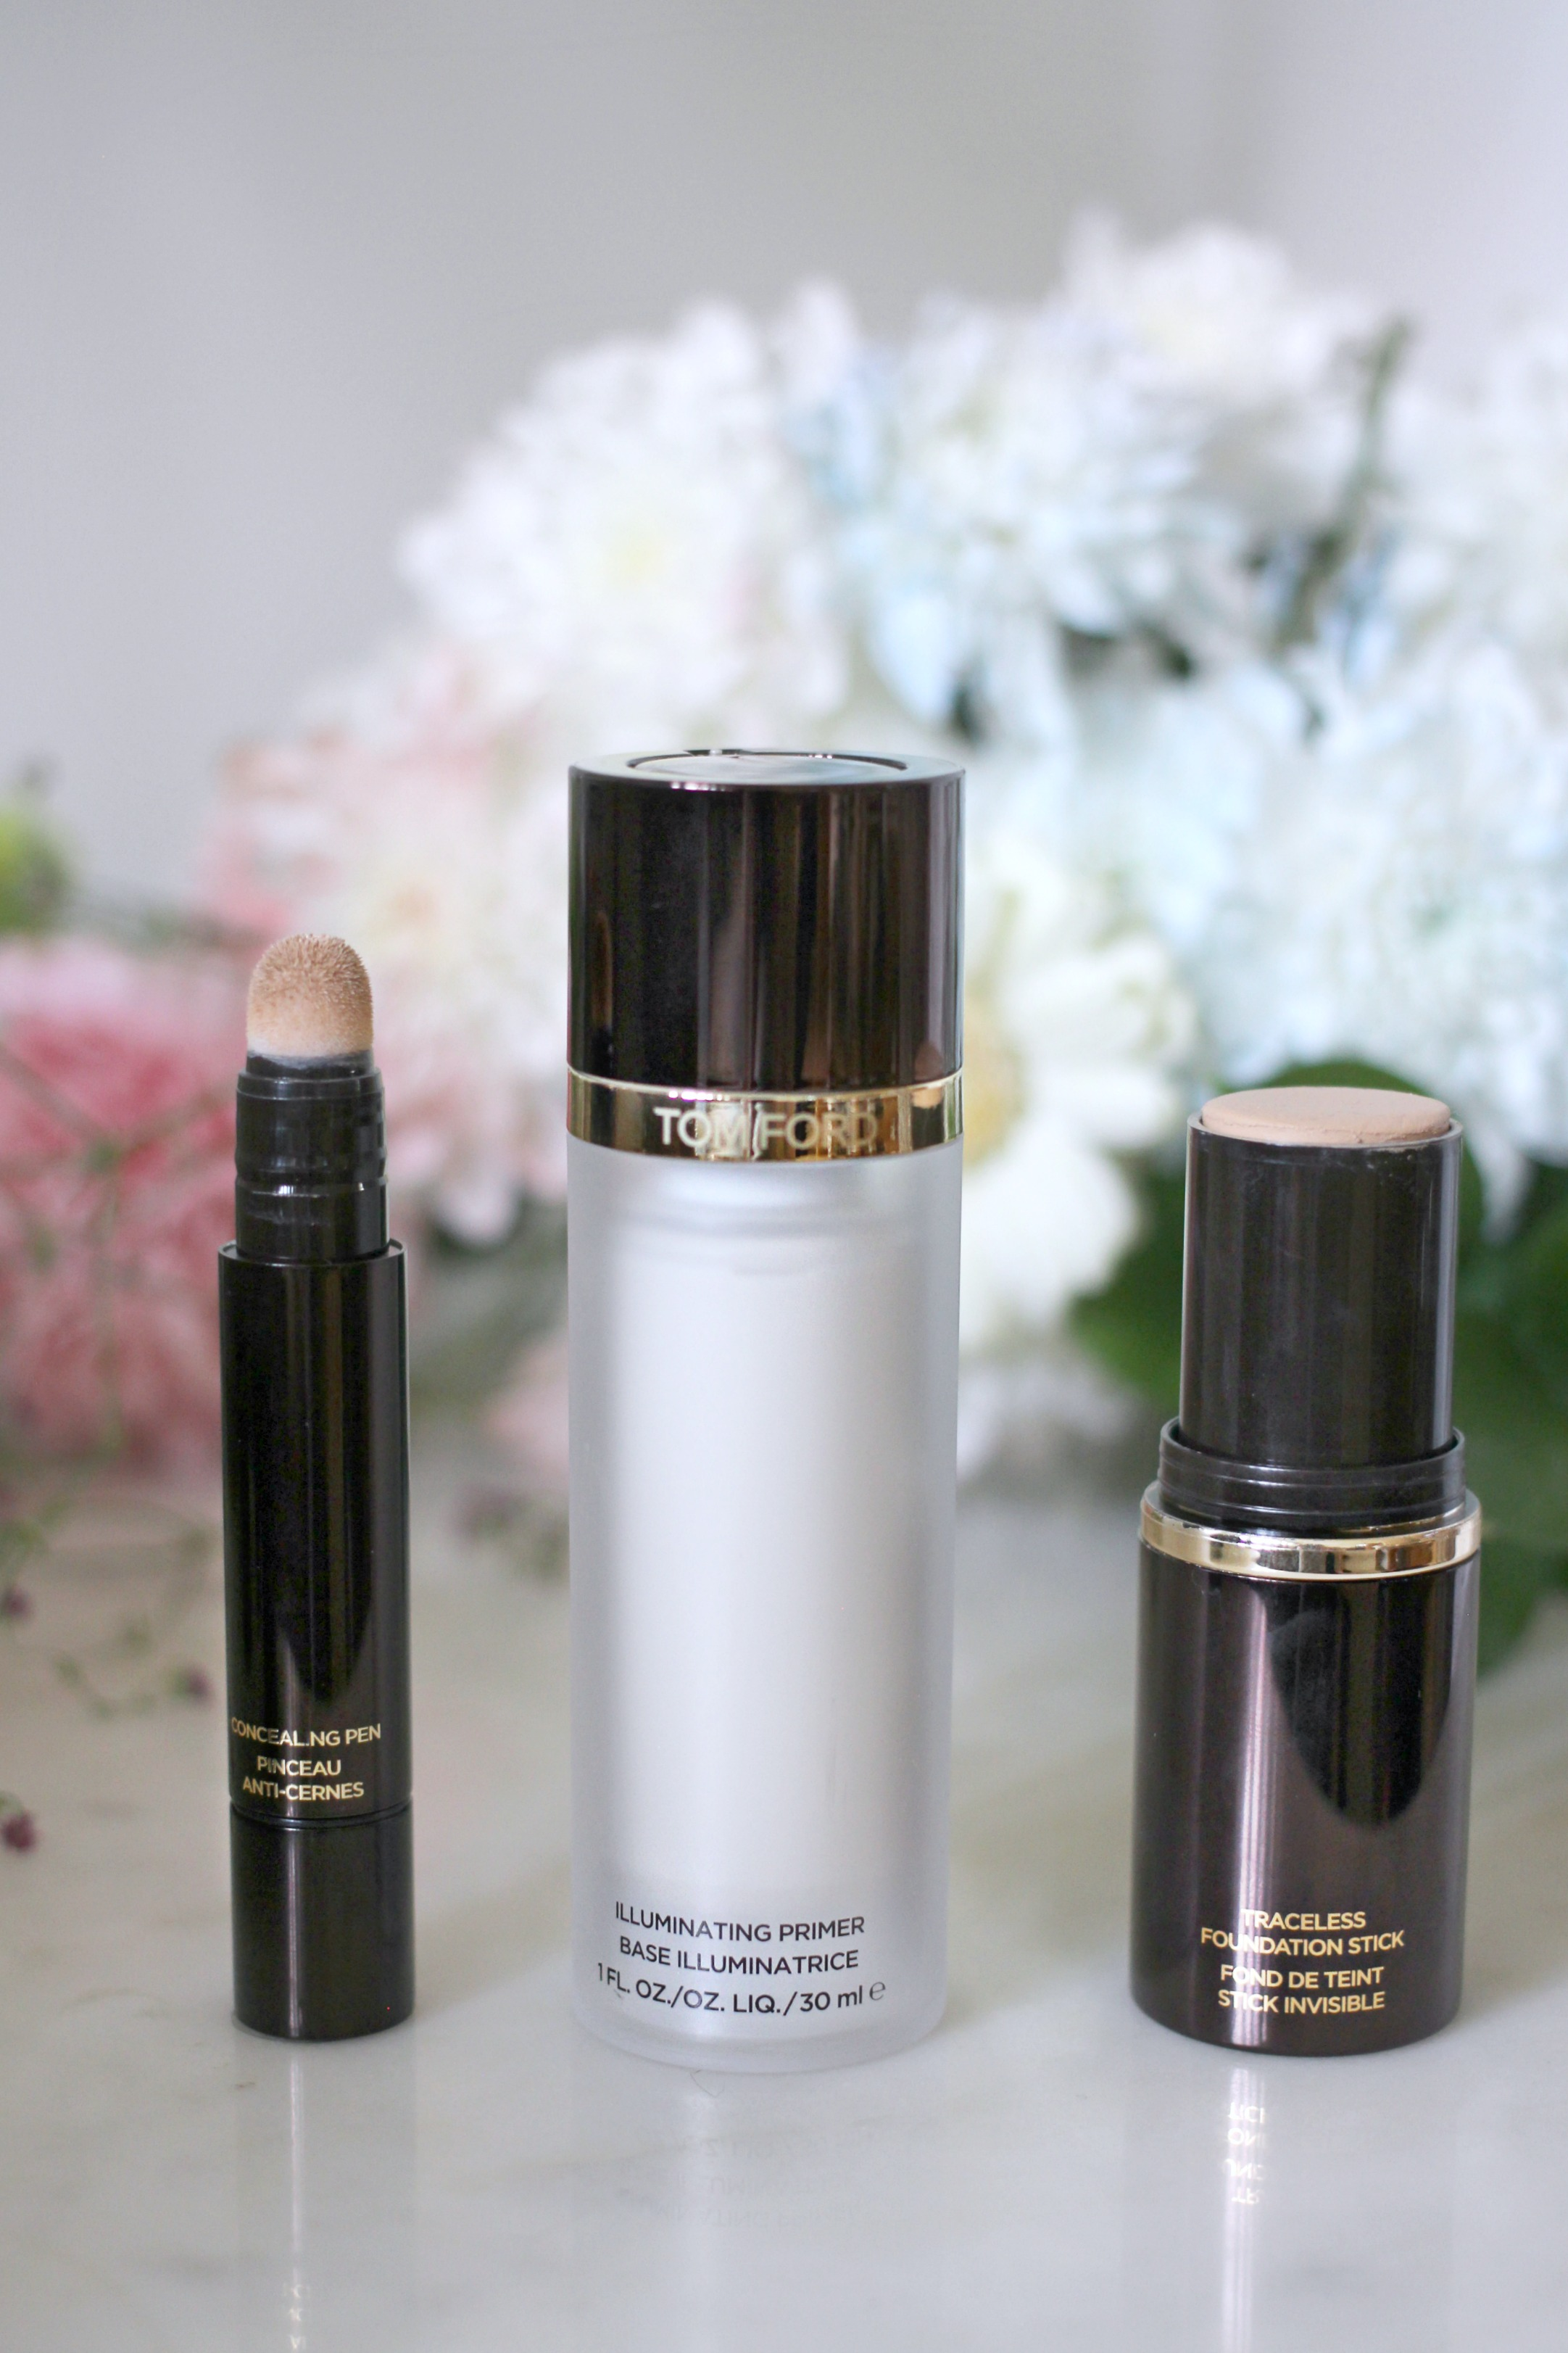 Tom Ford Spring Summer 2016 Beauty Makeup Collection - foundation